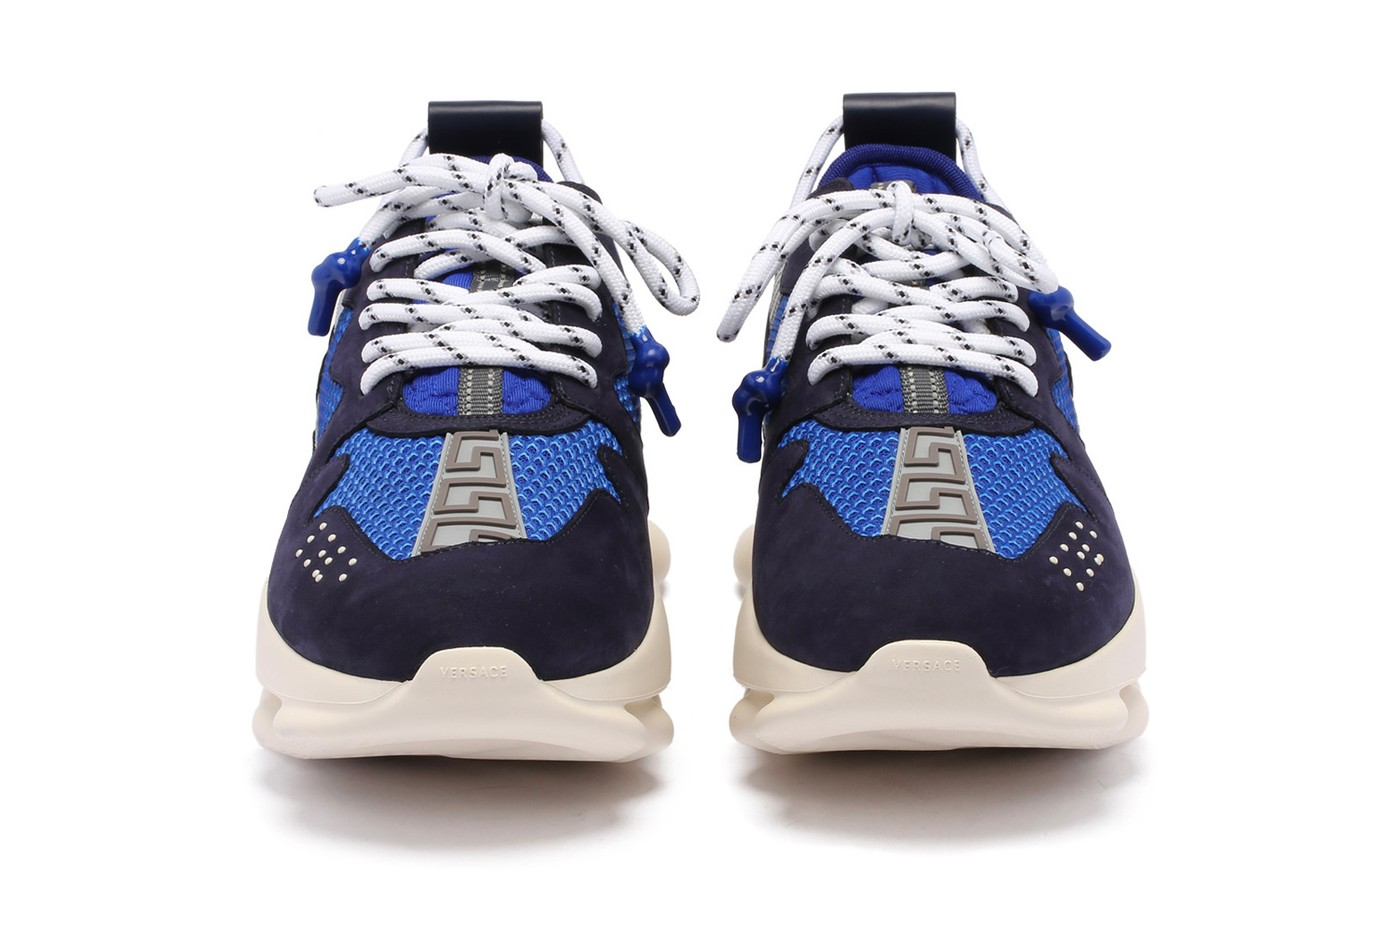 https___hypebeast.com_image_2019_07_versace-chain-reaction-2-sneakers-blue-release-info-04.jpg